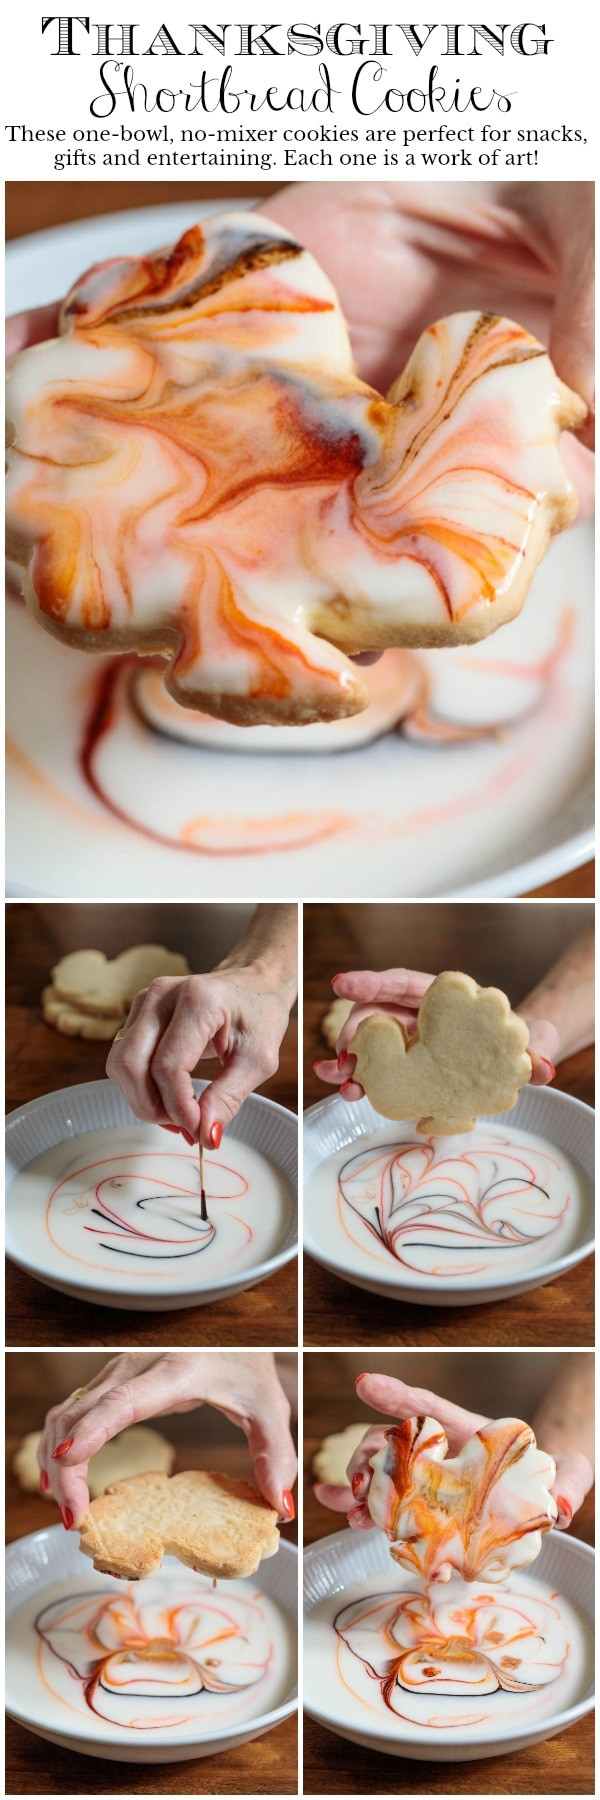 These one-bowl, no-mixer Thanksgiving Shortbread Cookies are great for gifts and entertaining. Each one is a beautiful work of art!#thanksgivingcookies, #easyholidaycookies, #easycookiedecoration